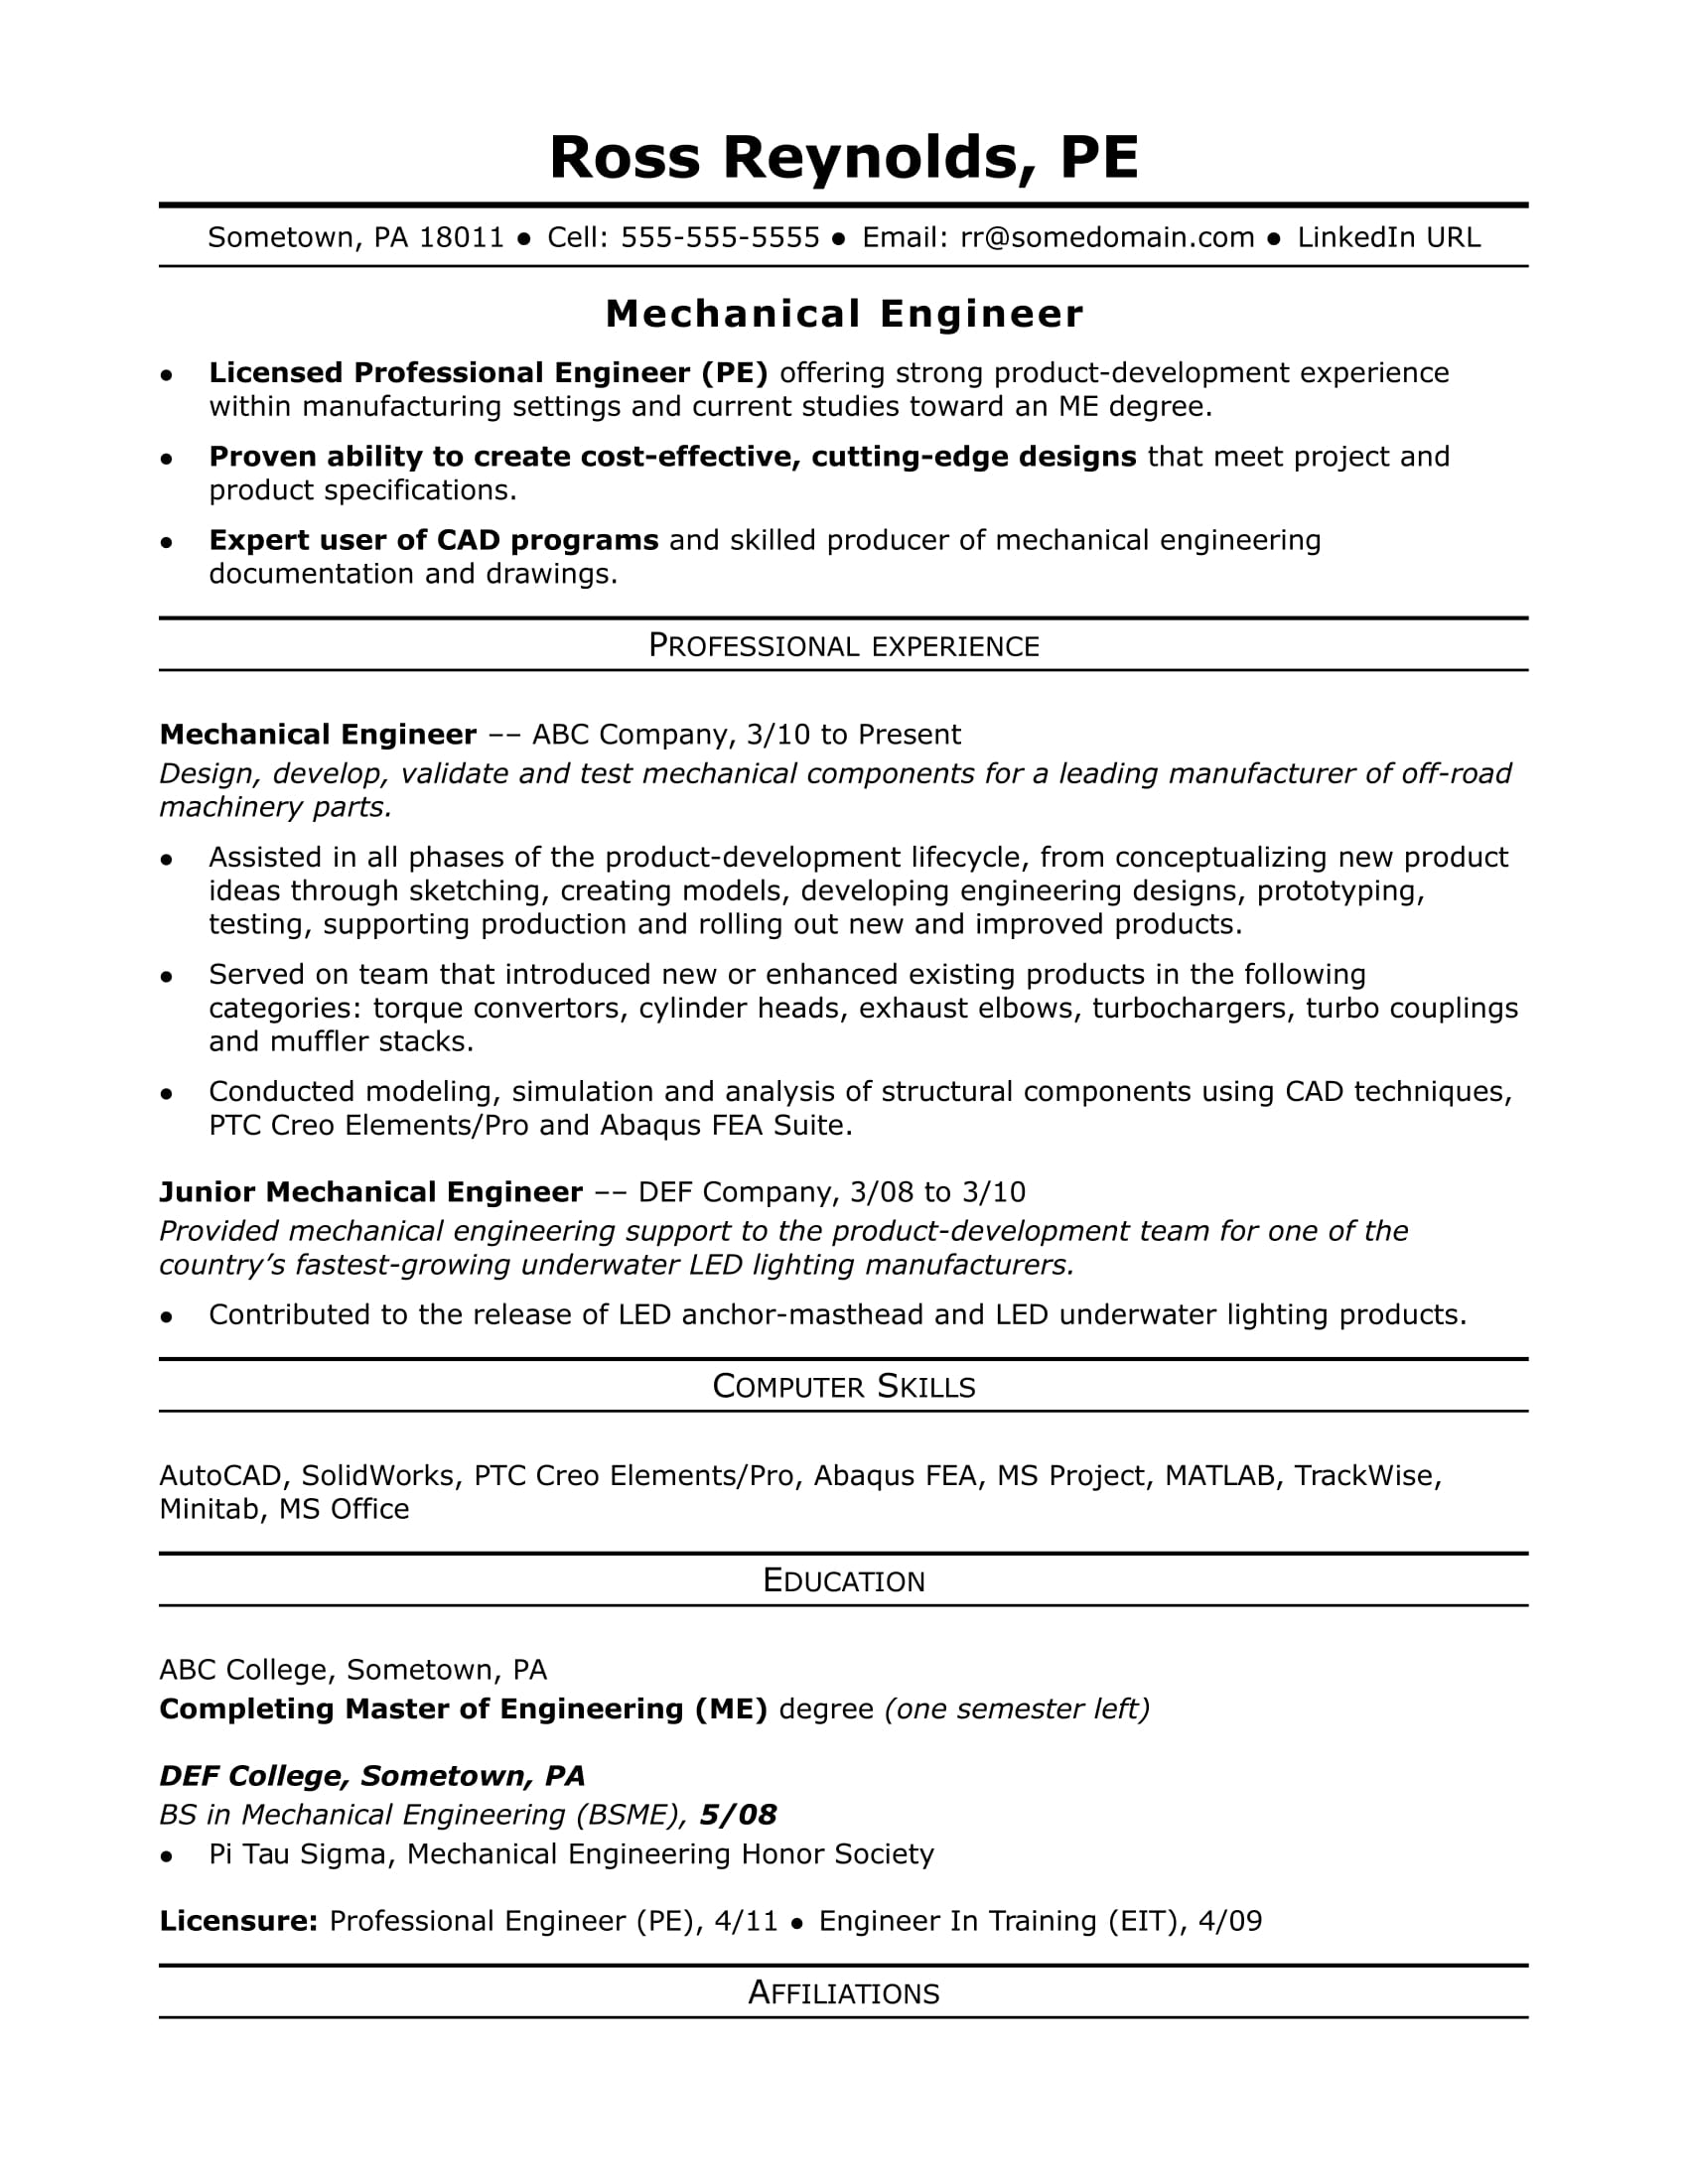 Sample Resume for a Midlevel Mechanical Engineer | Monster.com